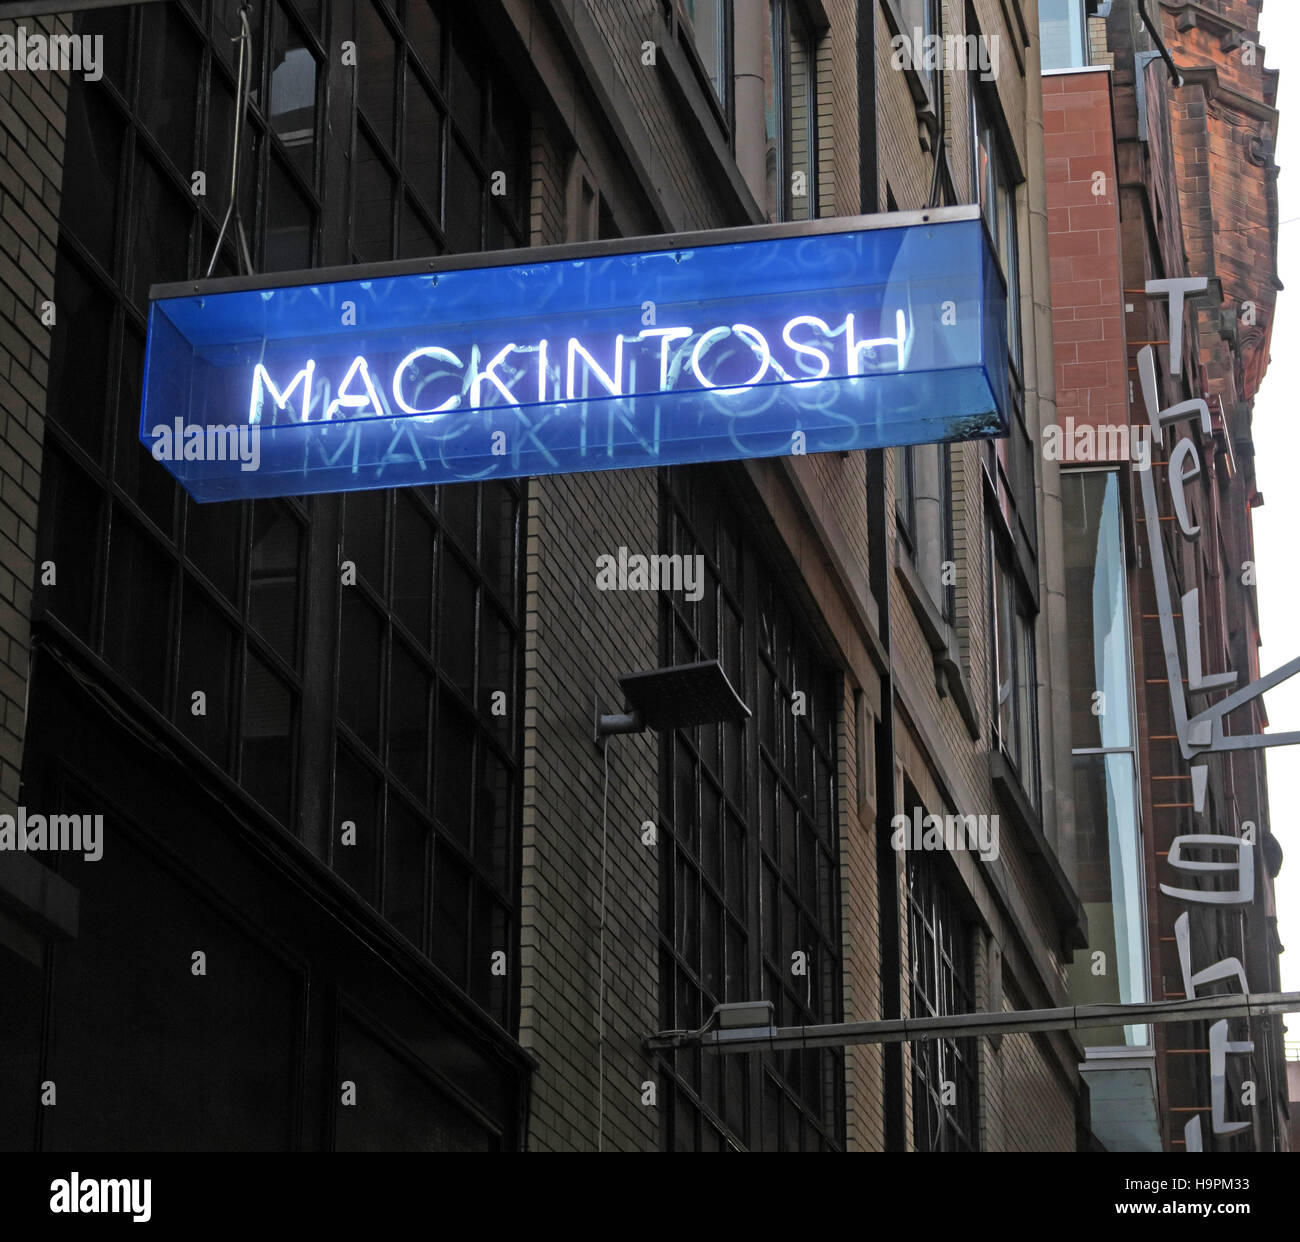 Mackintosh Legacy,The lighthouse art gallery, Glasgow, Scotland,UK - Stock Image